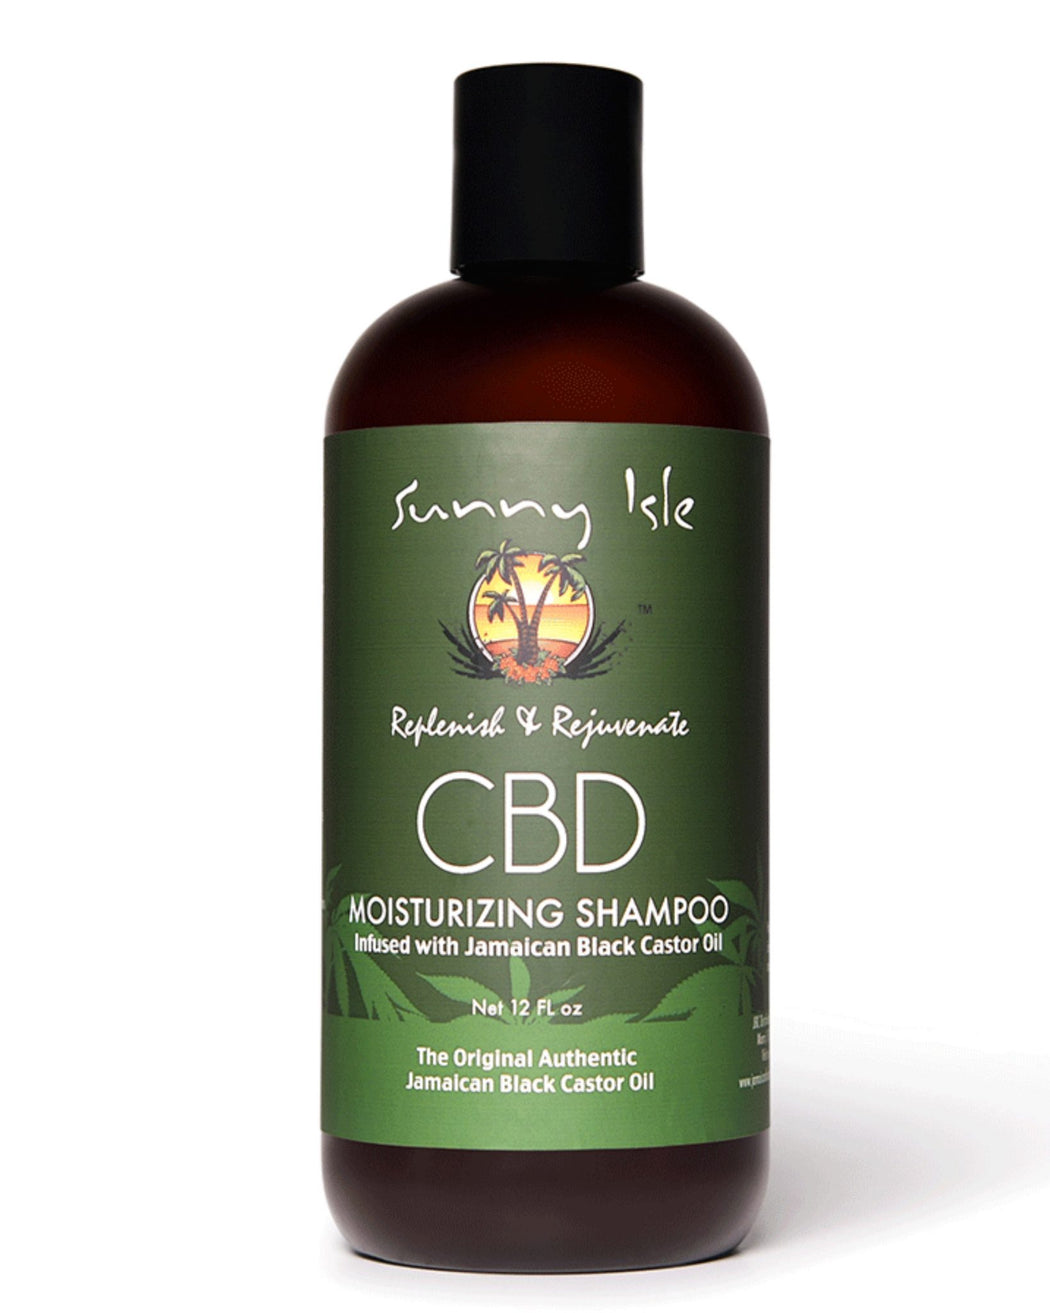 Sunny Isle CBD Moisturising Shampoo Infused with Jamaican Black Castor Oil